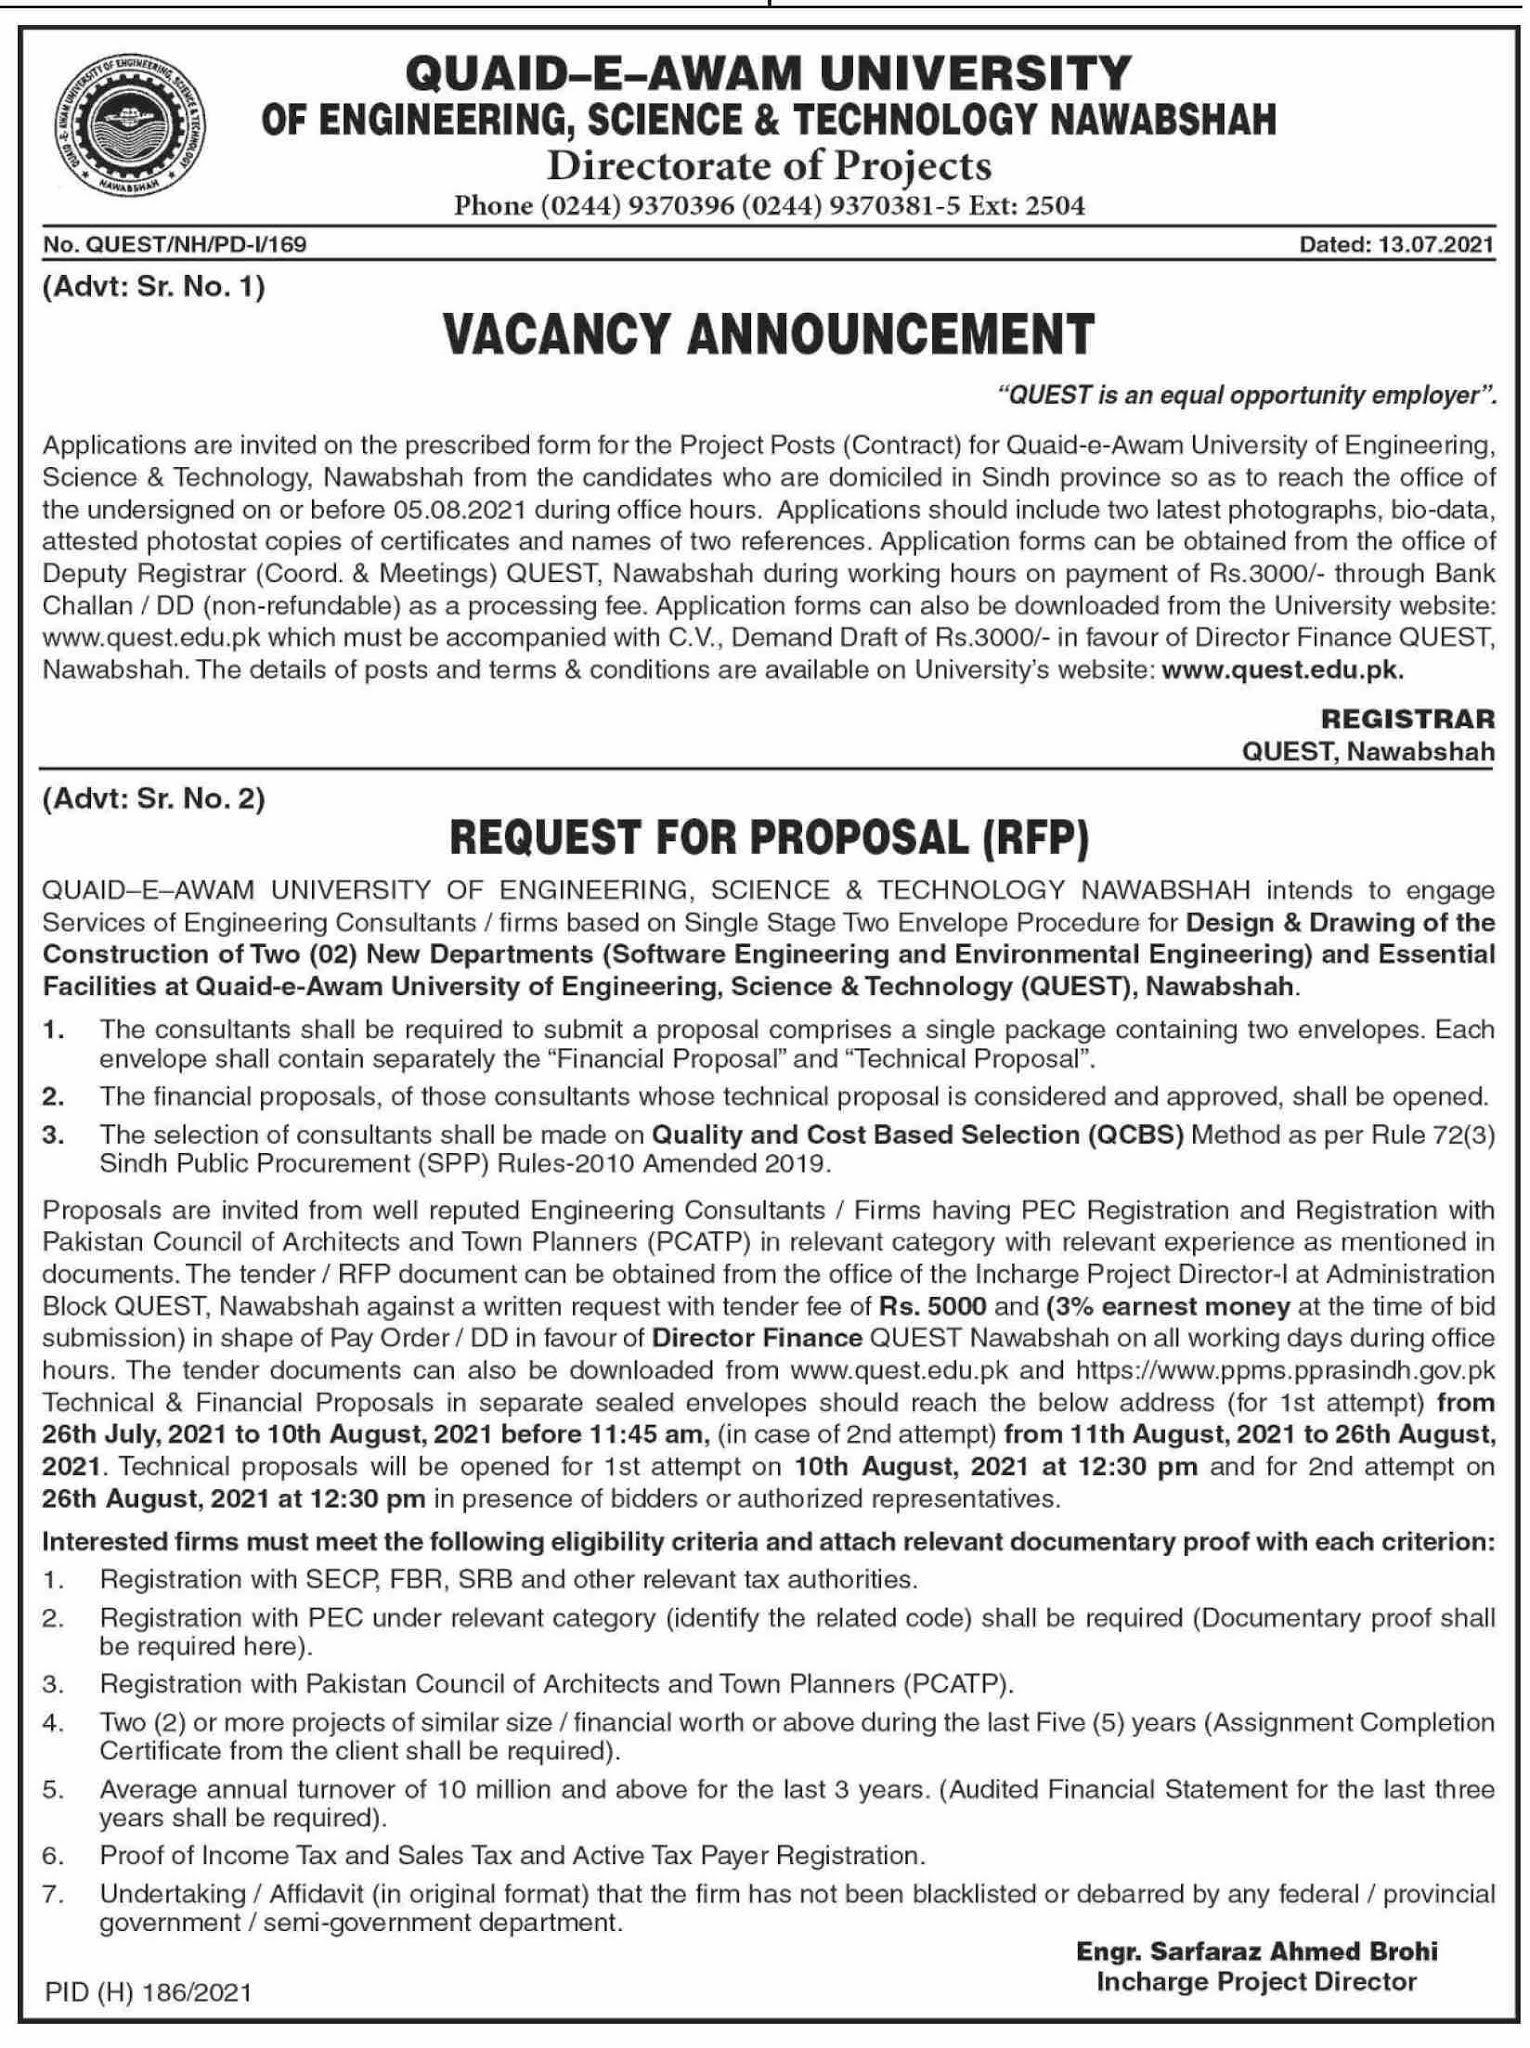 Jobs in Quaid e Azam University of Engineering Science and Technology